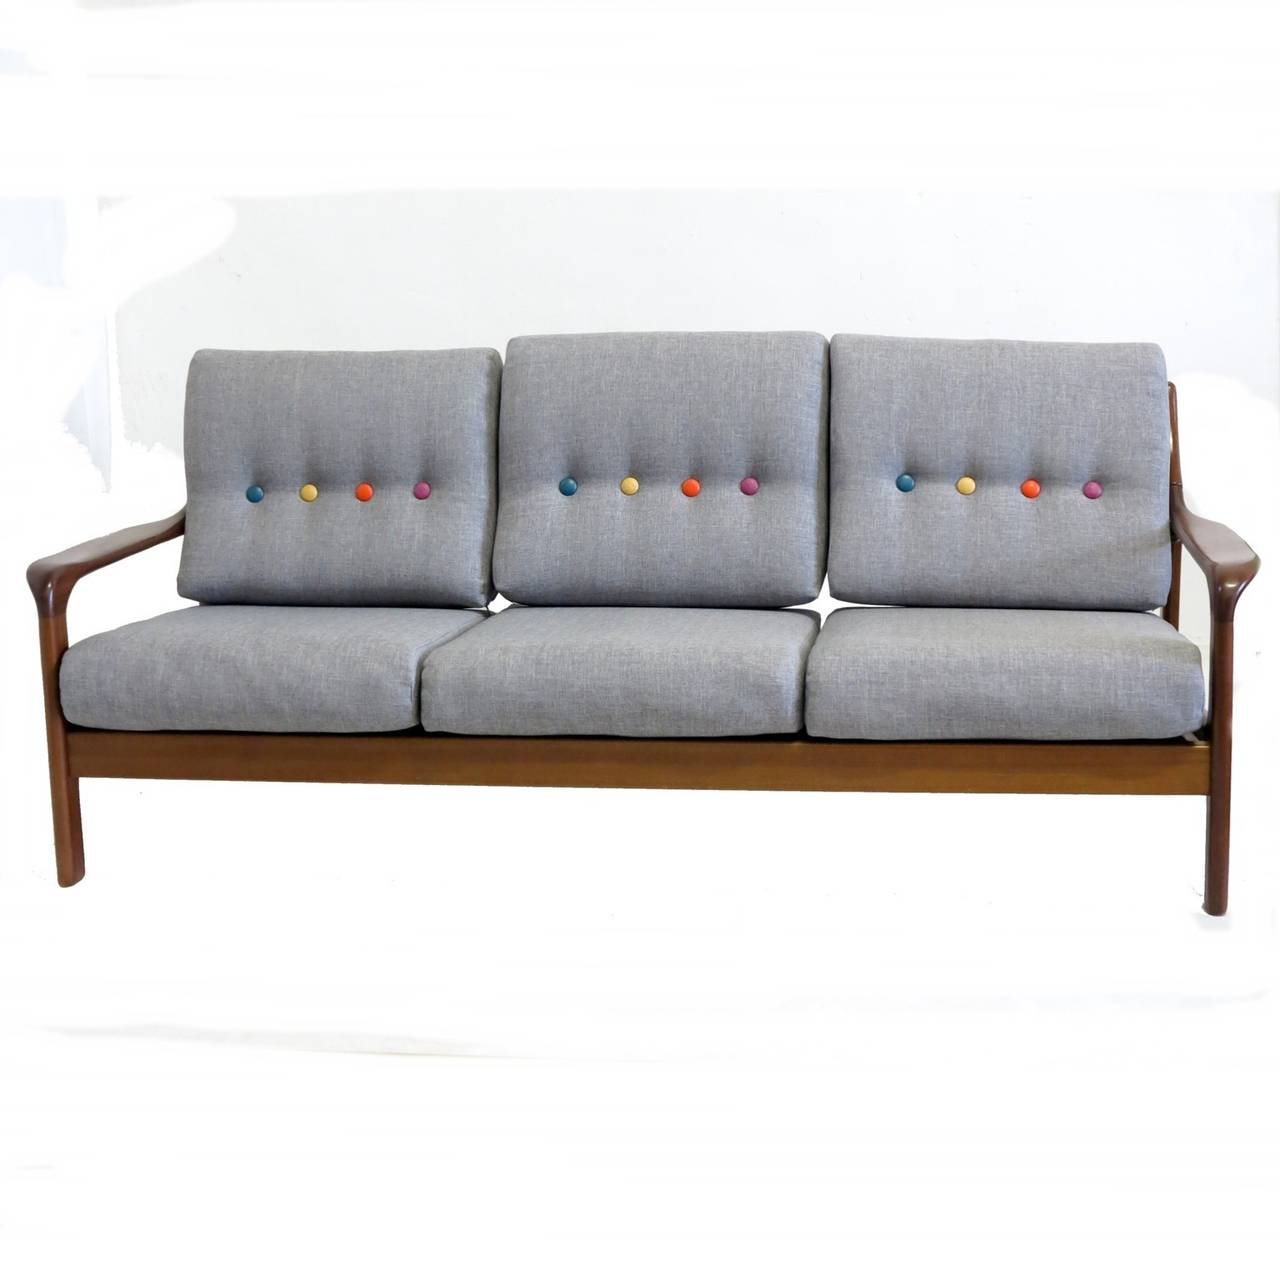 Sofa or daybed in the scandinavian style 1950 1960 at 1stdibs for Scandinavian style sofa